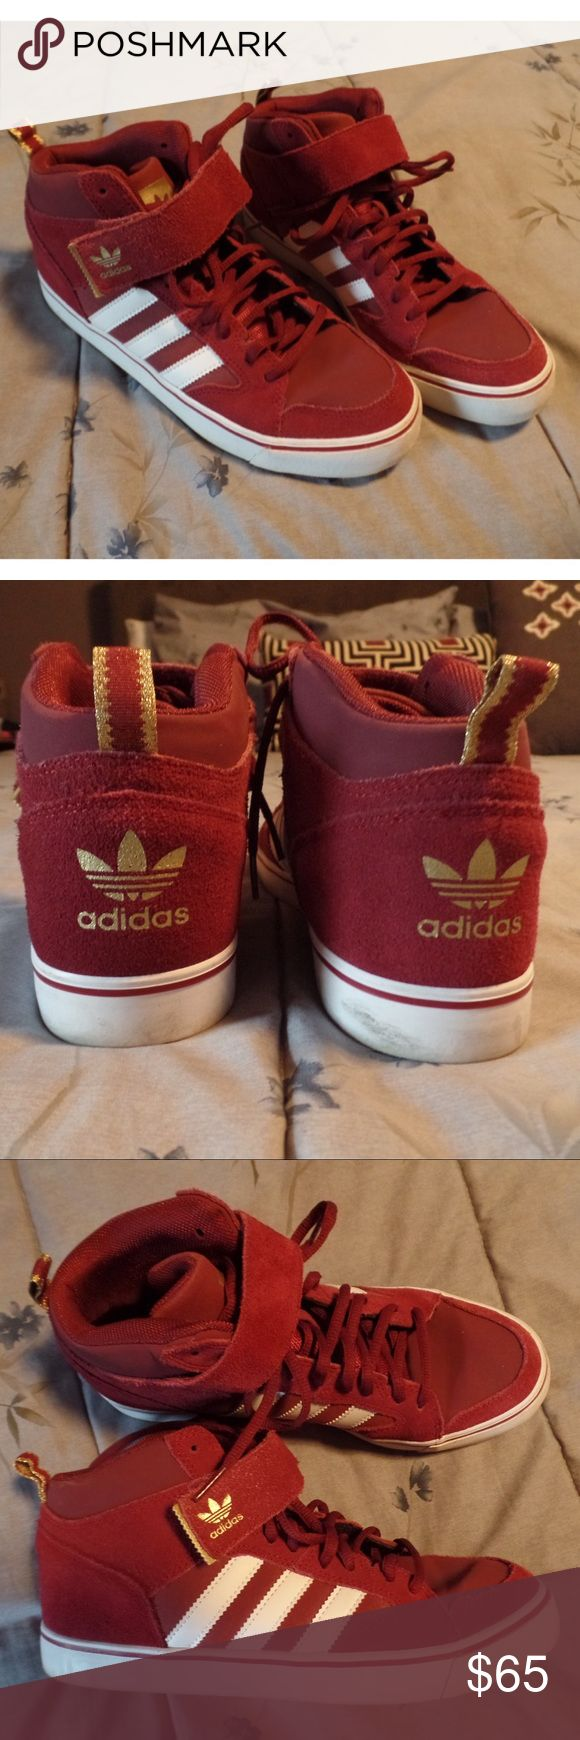 Burgundy Adidas Mid Top Sneakers Rare, Excellent condition, only worn once. Minor scuffing on white sole. Burgundy/maroon suede and nylon. Mens US 7, fits women 8.5. I'm an 8 and these are just a little too big on me : ( Adidas Shoes Athletic Shoes